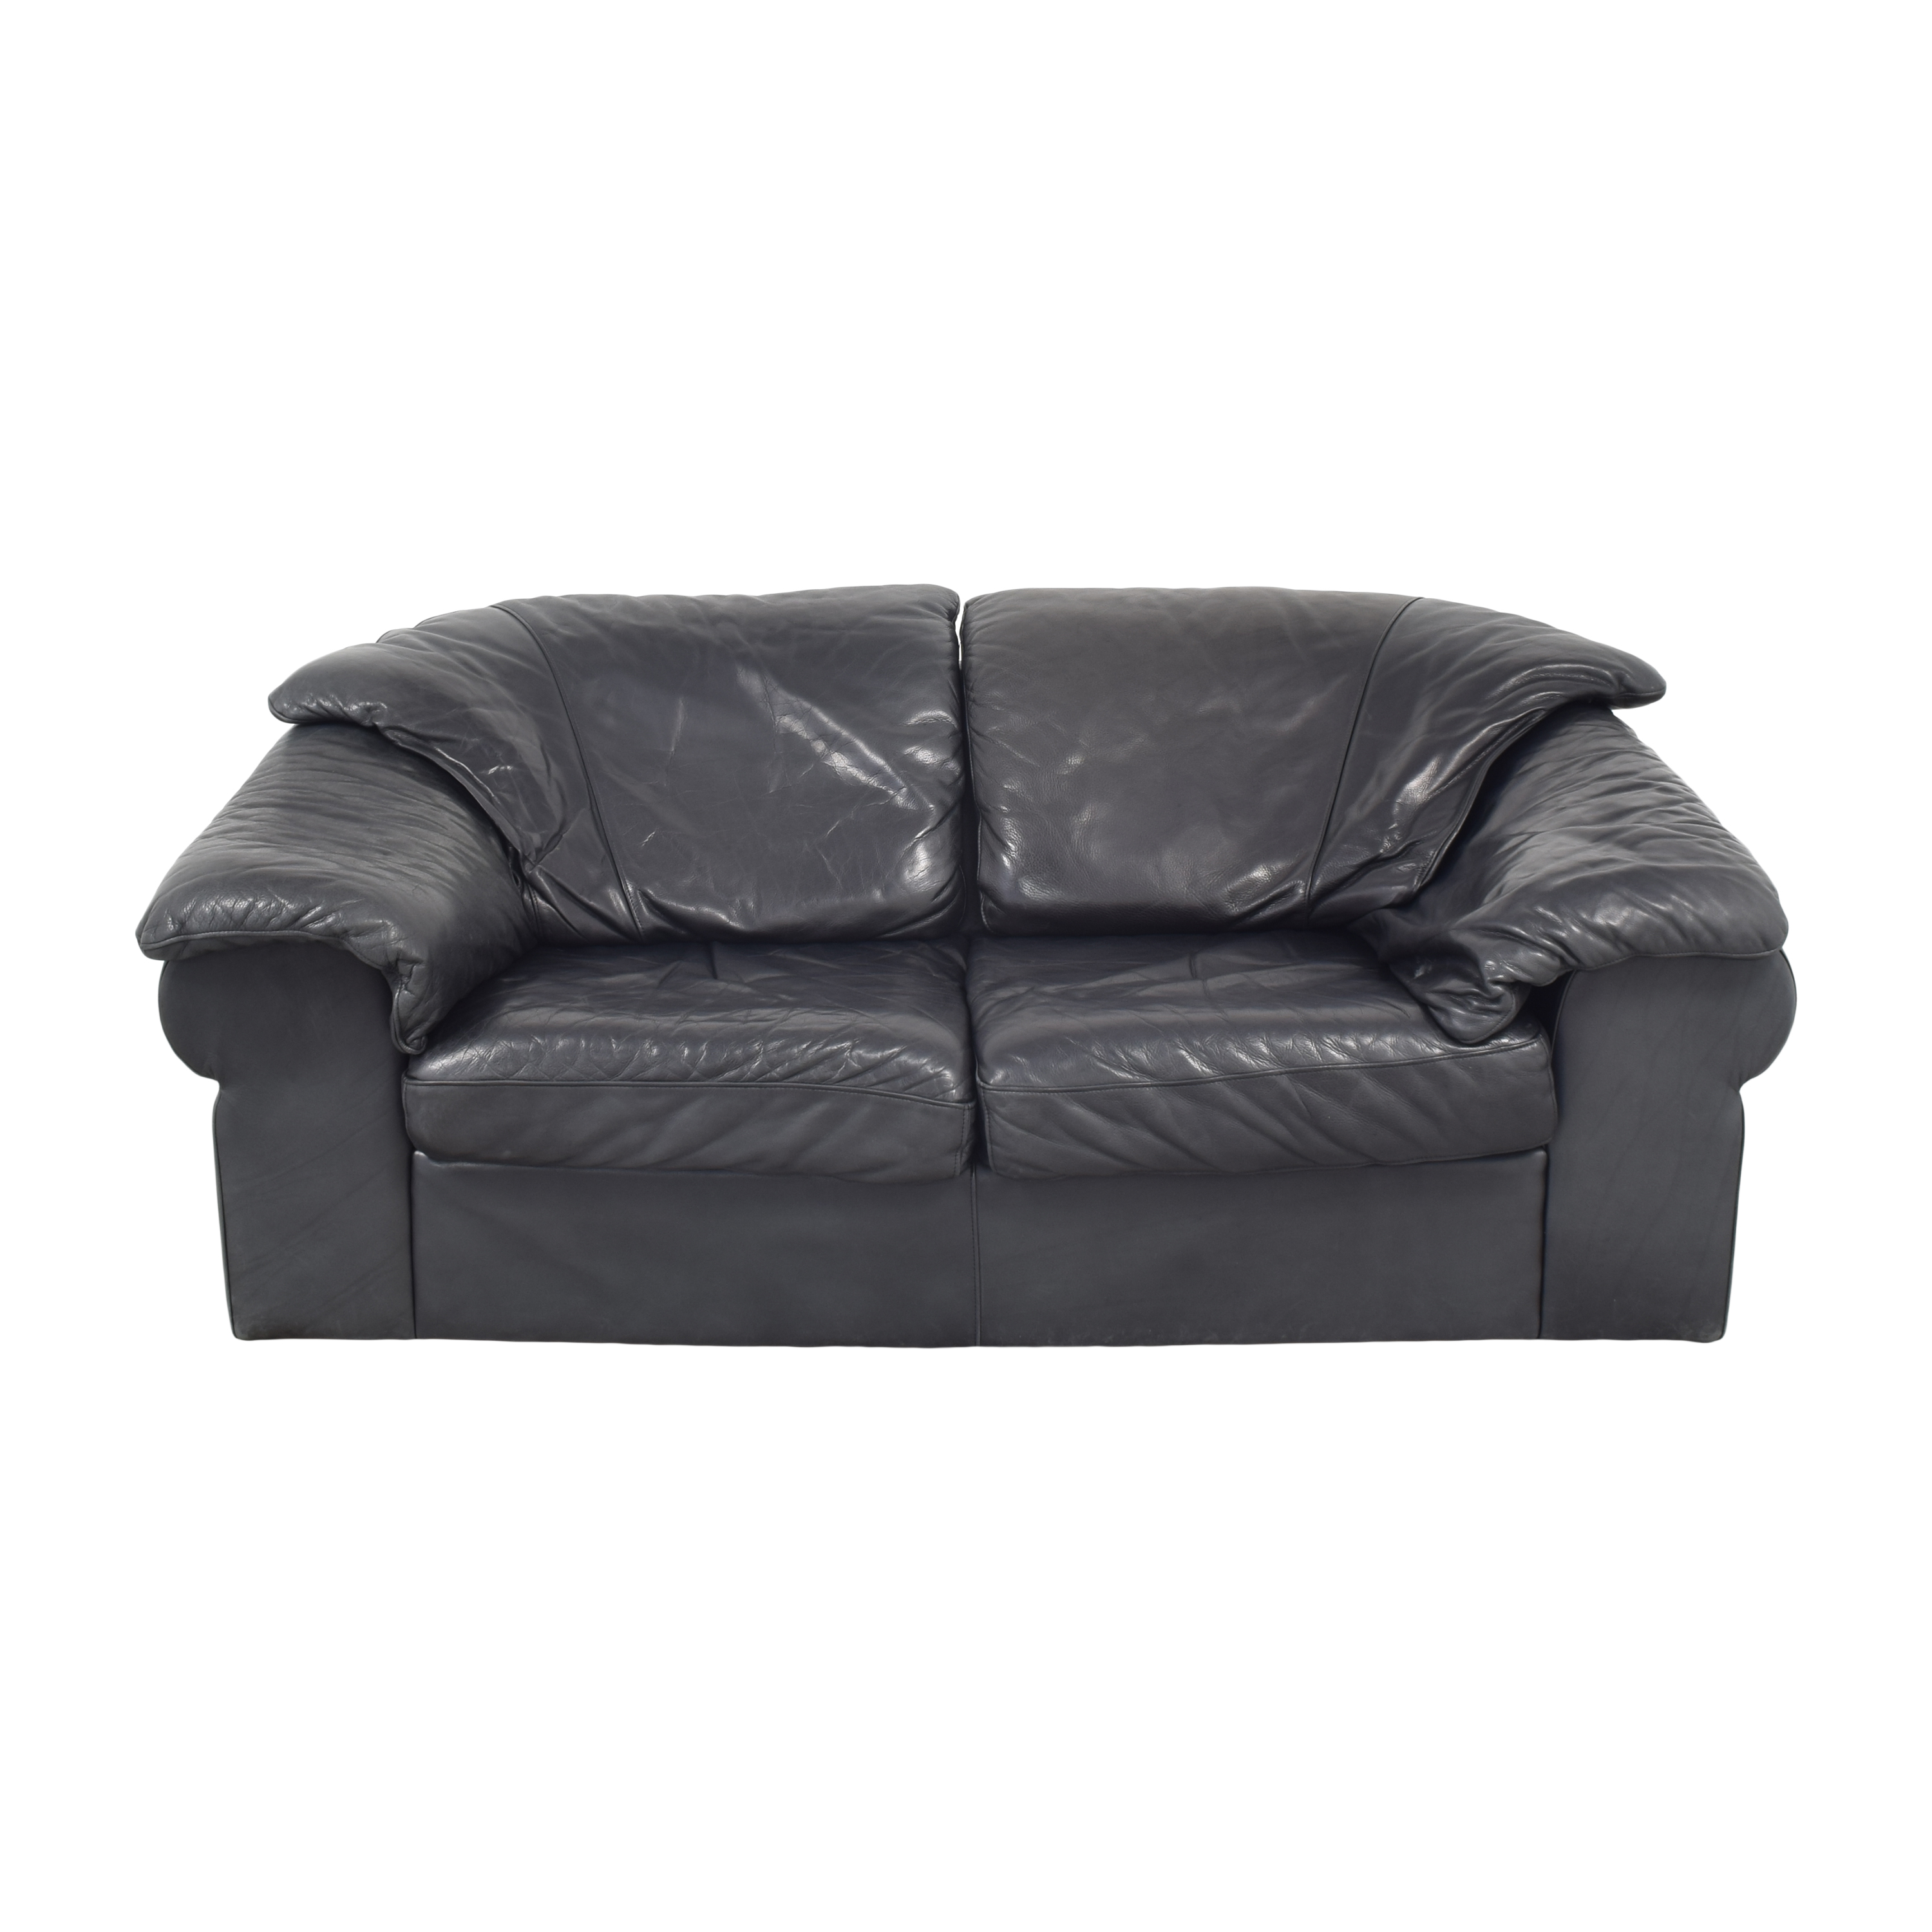 Leather Center Leather Center Flat Arm Loveseat Loveseats